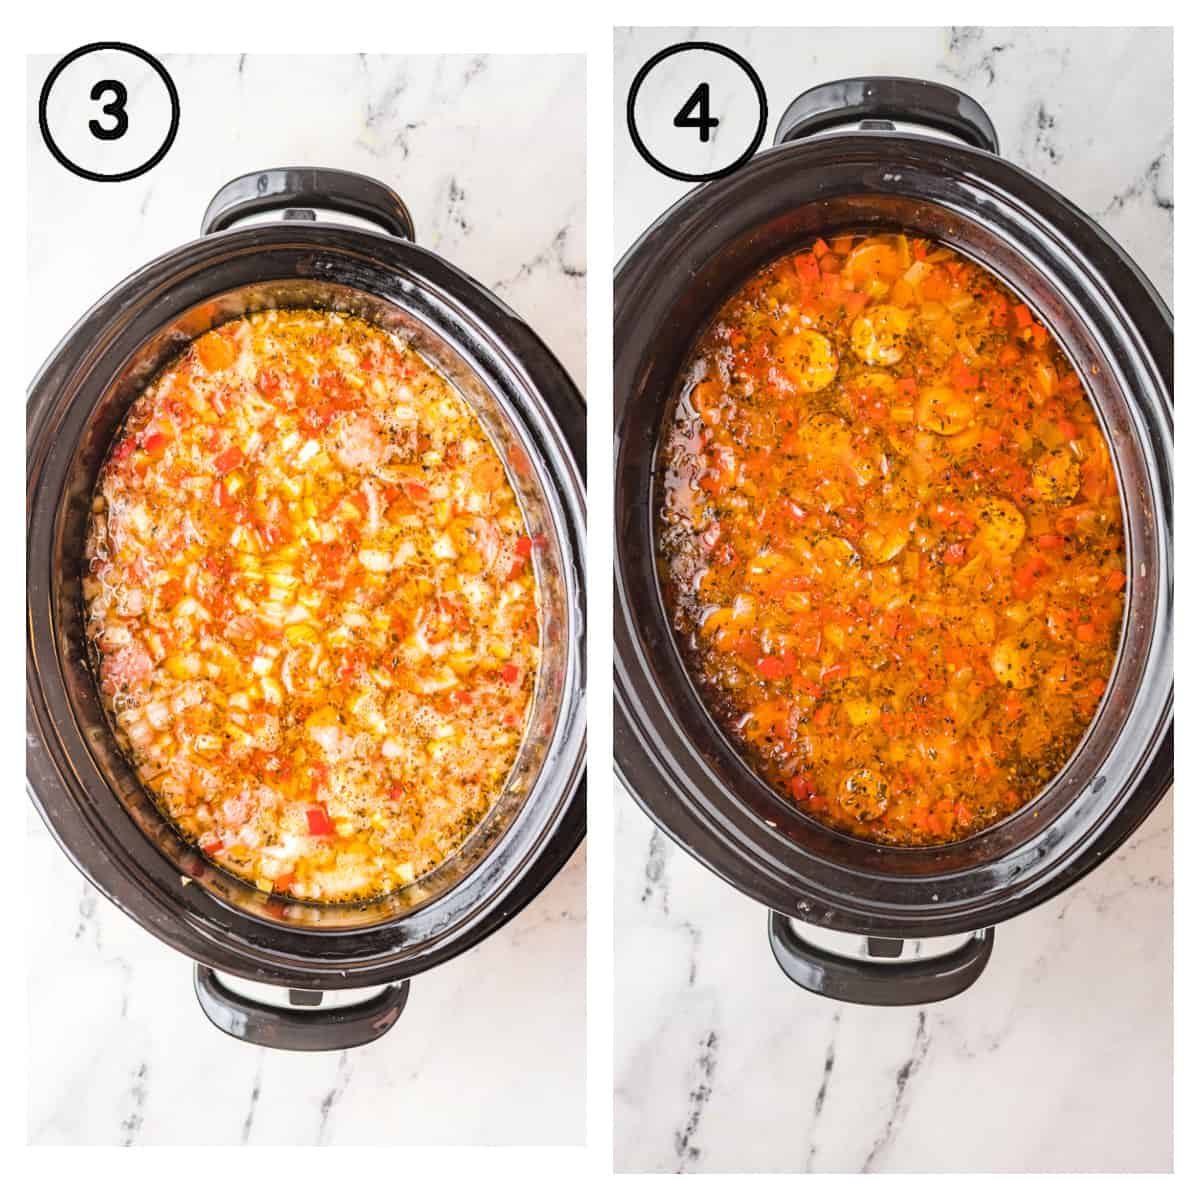 Two process photos. First one all the ingredients stirred together in the slow cooker. Second one, everything cooked and done in the slow cooker.